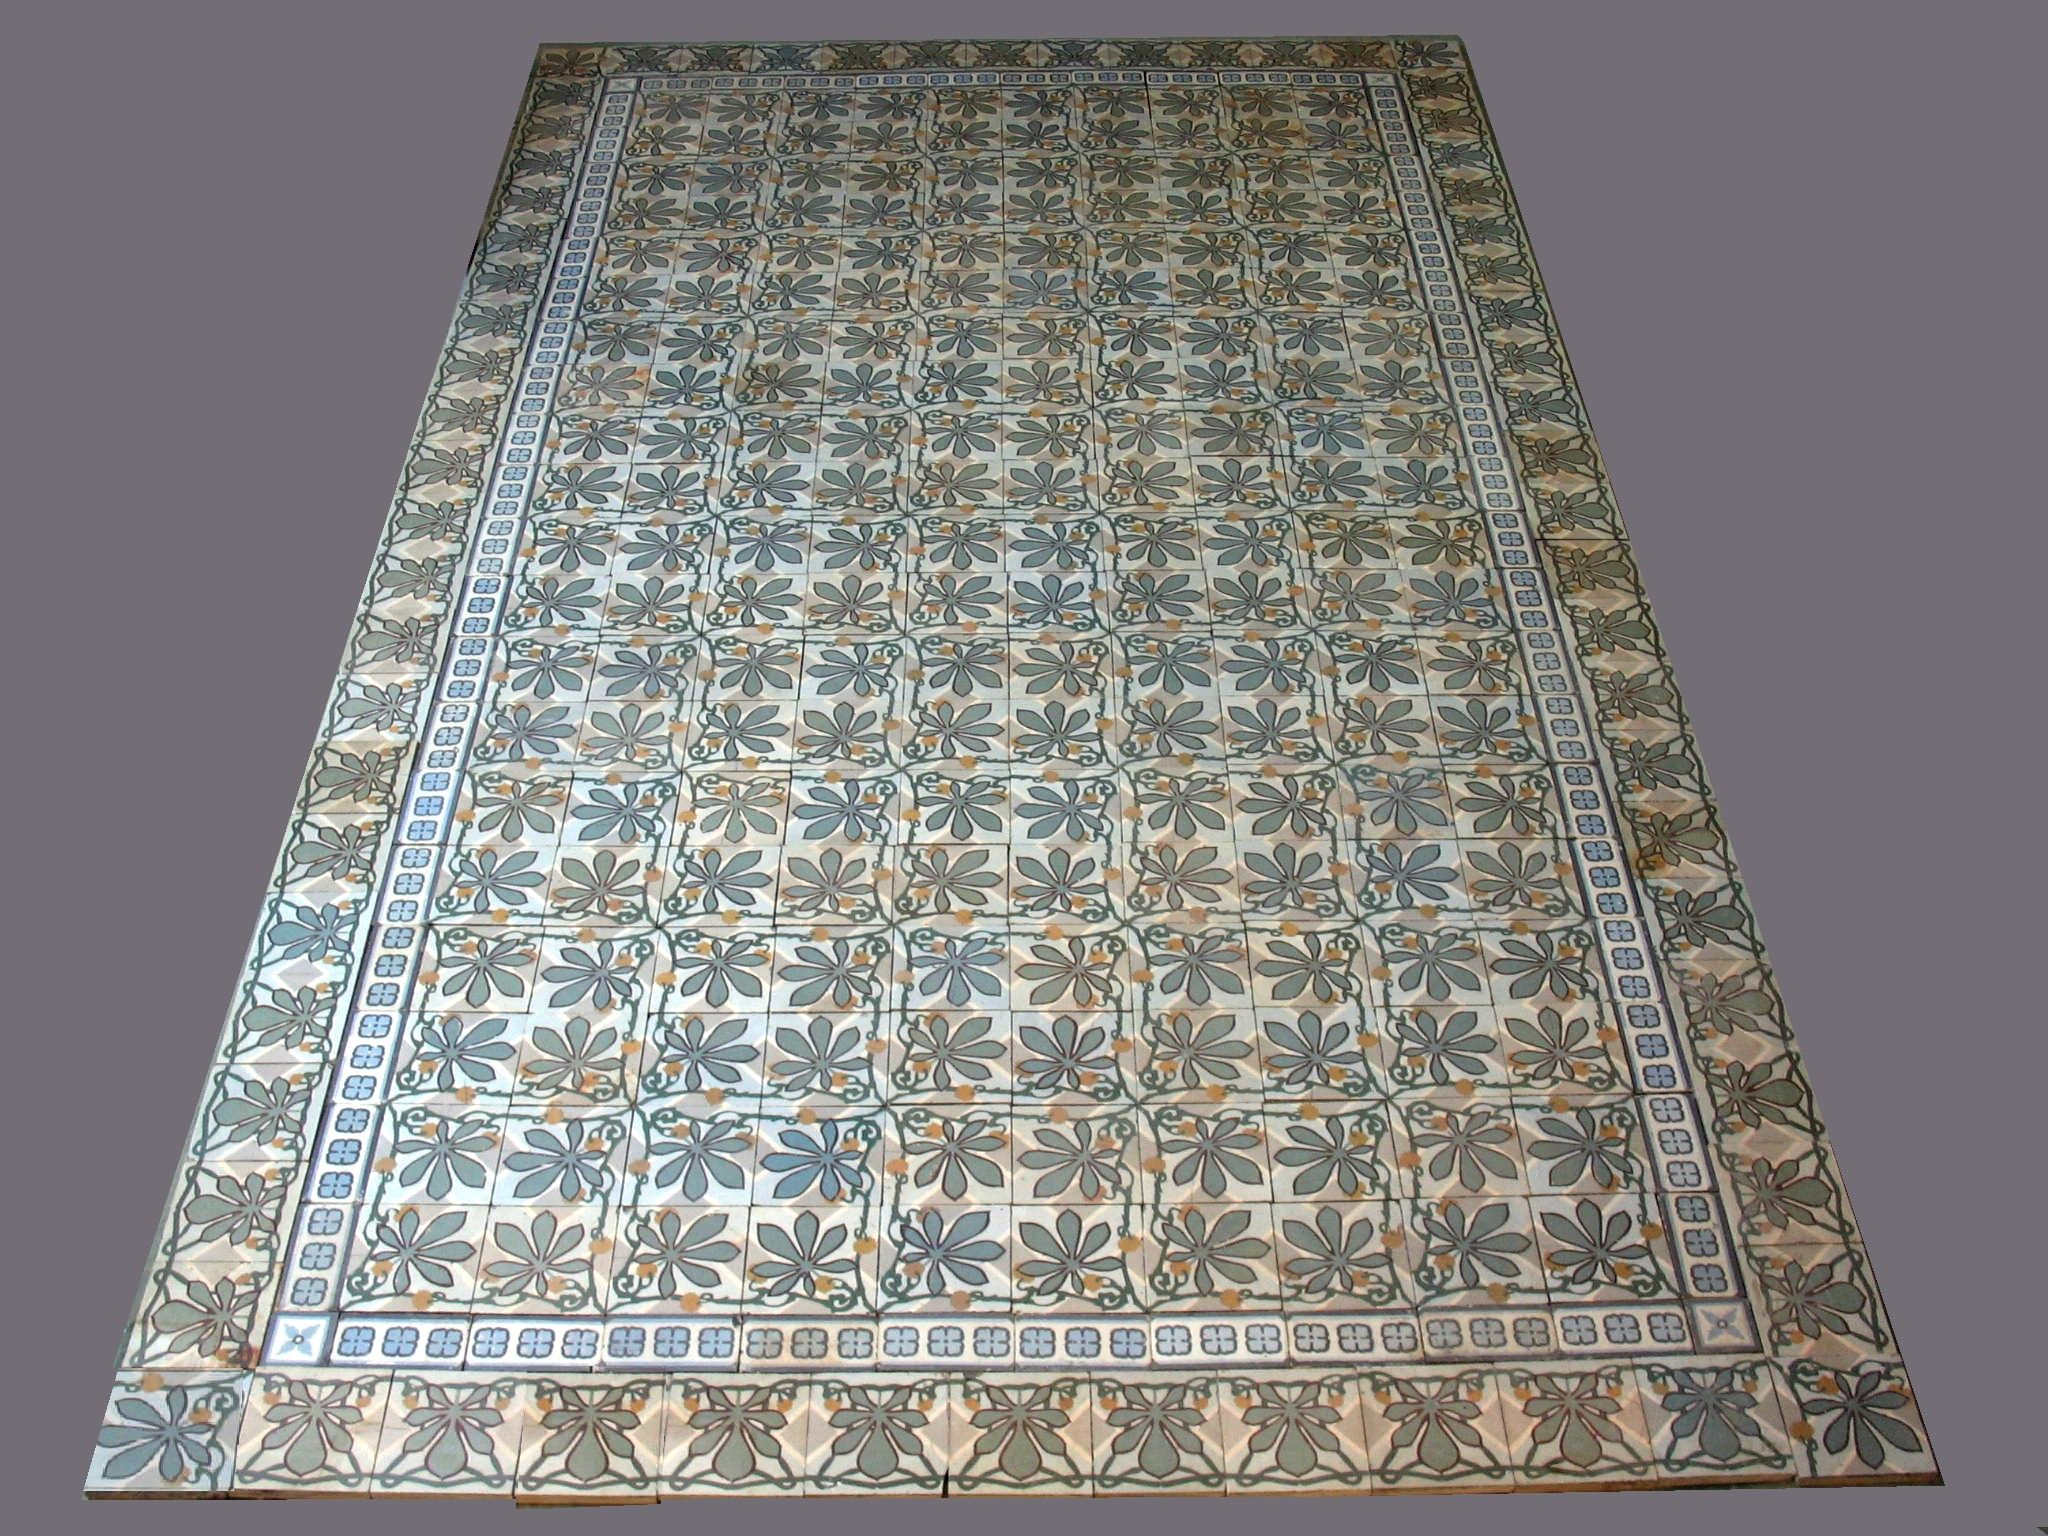 french tiles douzies maubeuge tapis carrelage ancien ceramique art deco vers 1900 feuilles de. Black Bedroom Furniture Sets. Home Design Ideas